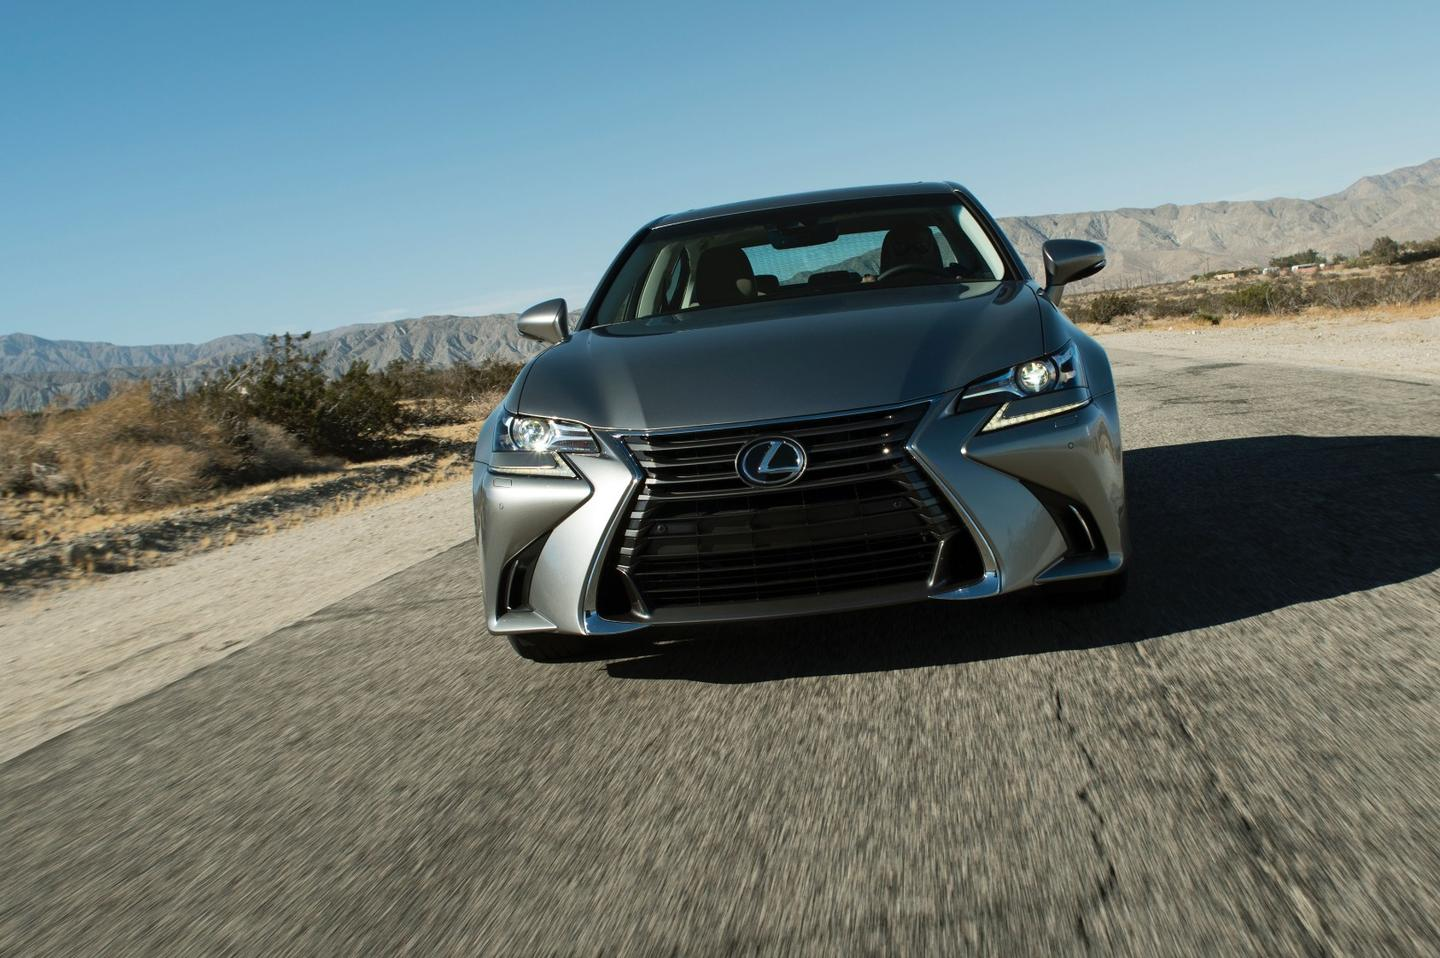 The 2016 Lexus GS features 10 airbags as standard for occupant protection and the Lexus Safety System +